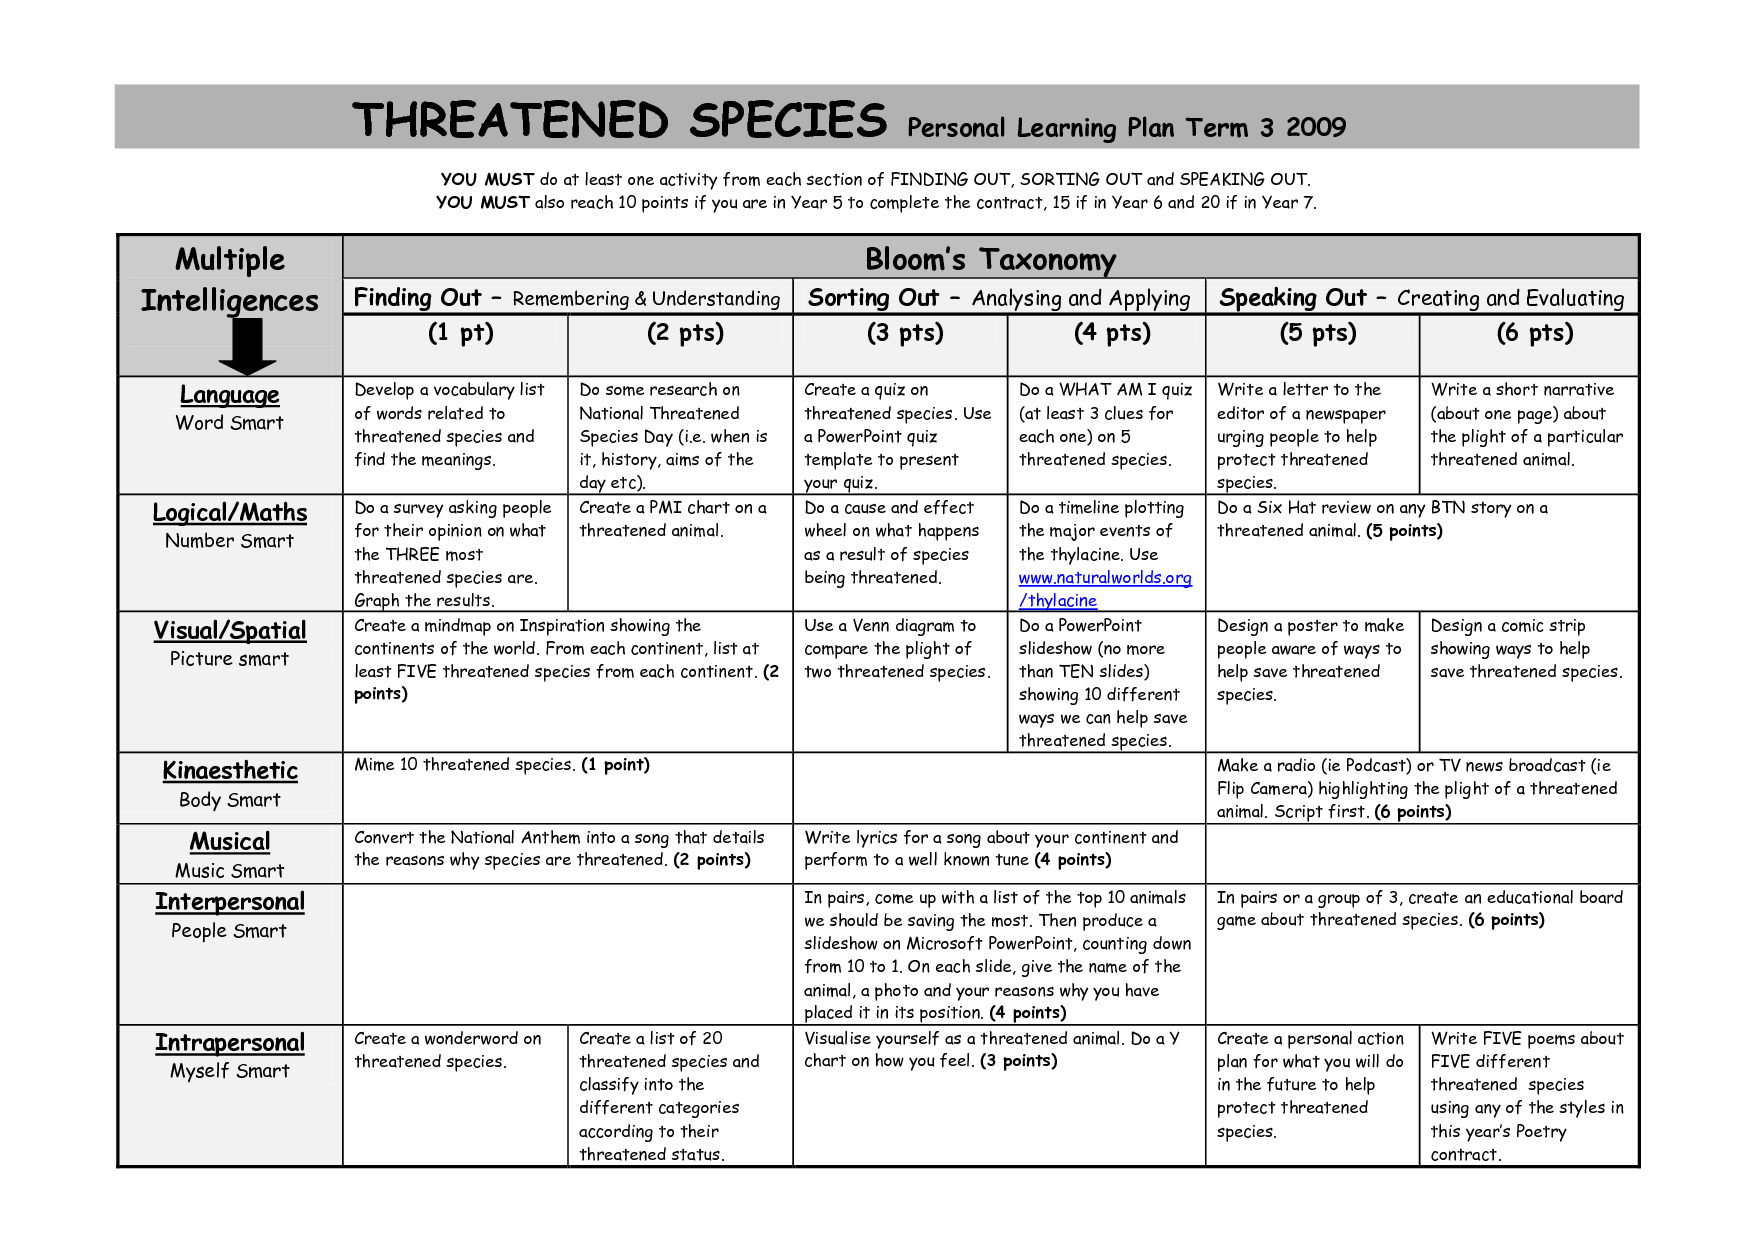 a sample assignment grid combining multiple intelligences a sample assignment grid combining multiple intelligences bloom s taxonomy this ambitious teacher focused on